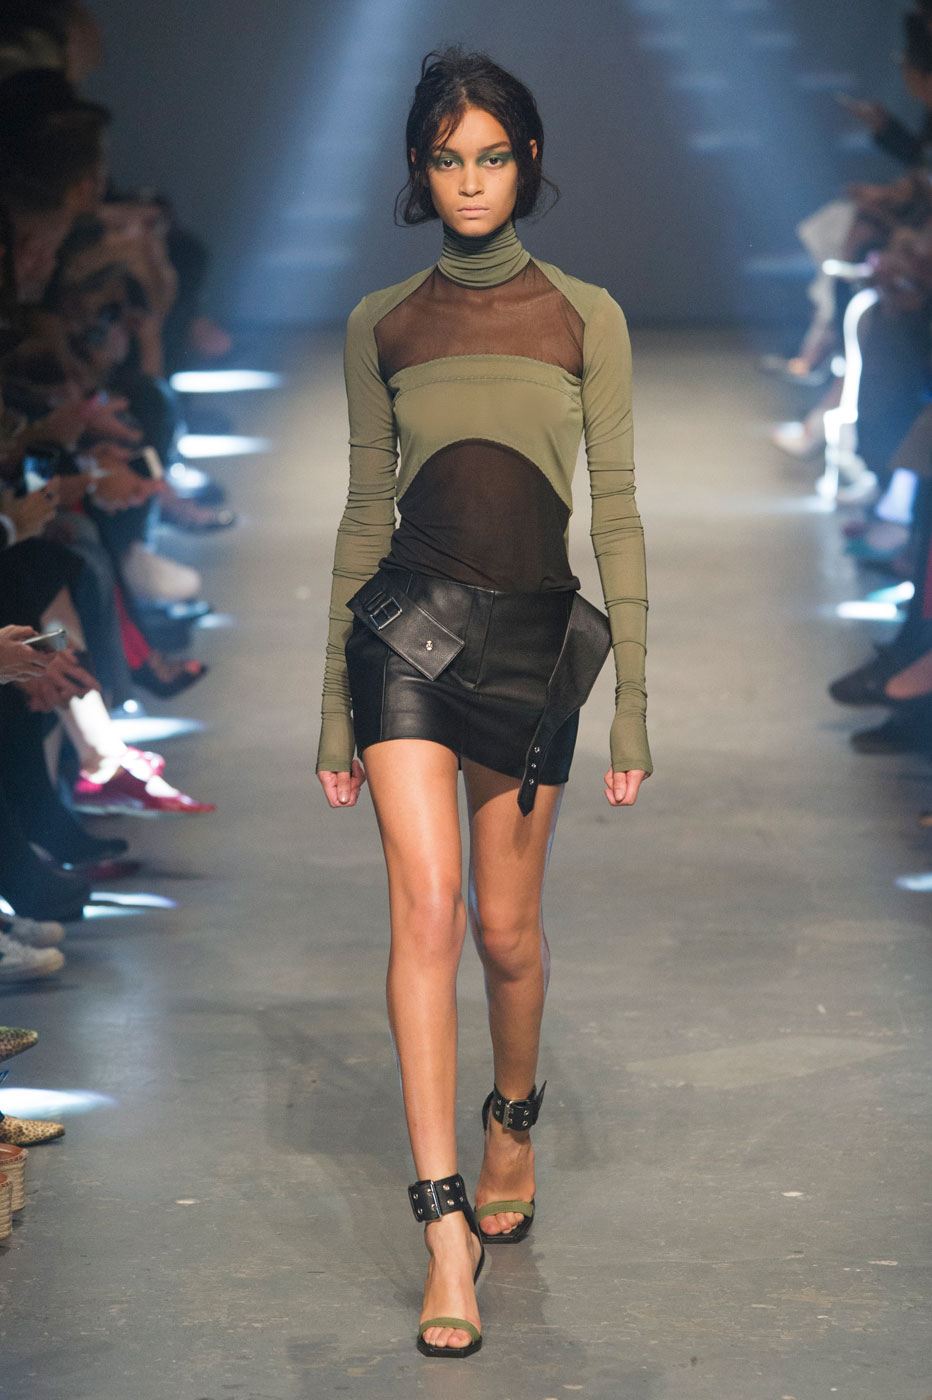 Versus Spring 2017 Is Designed for A